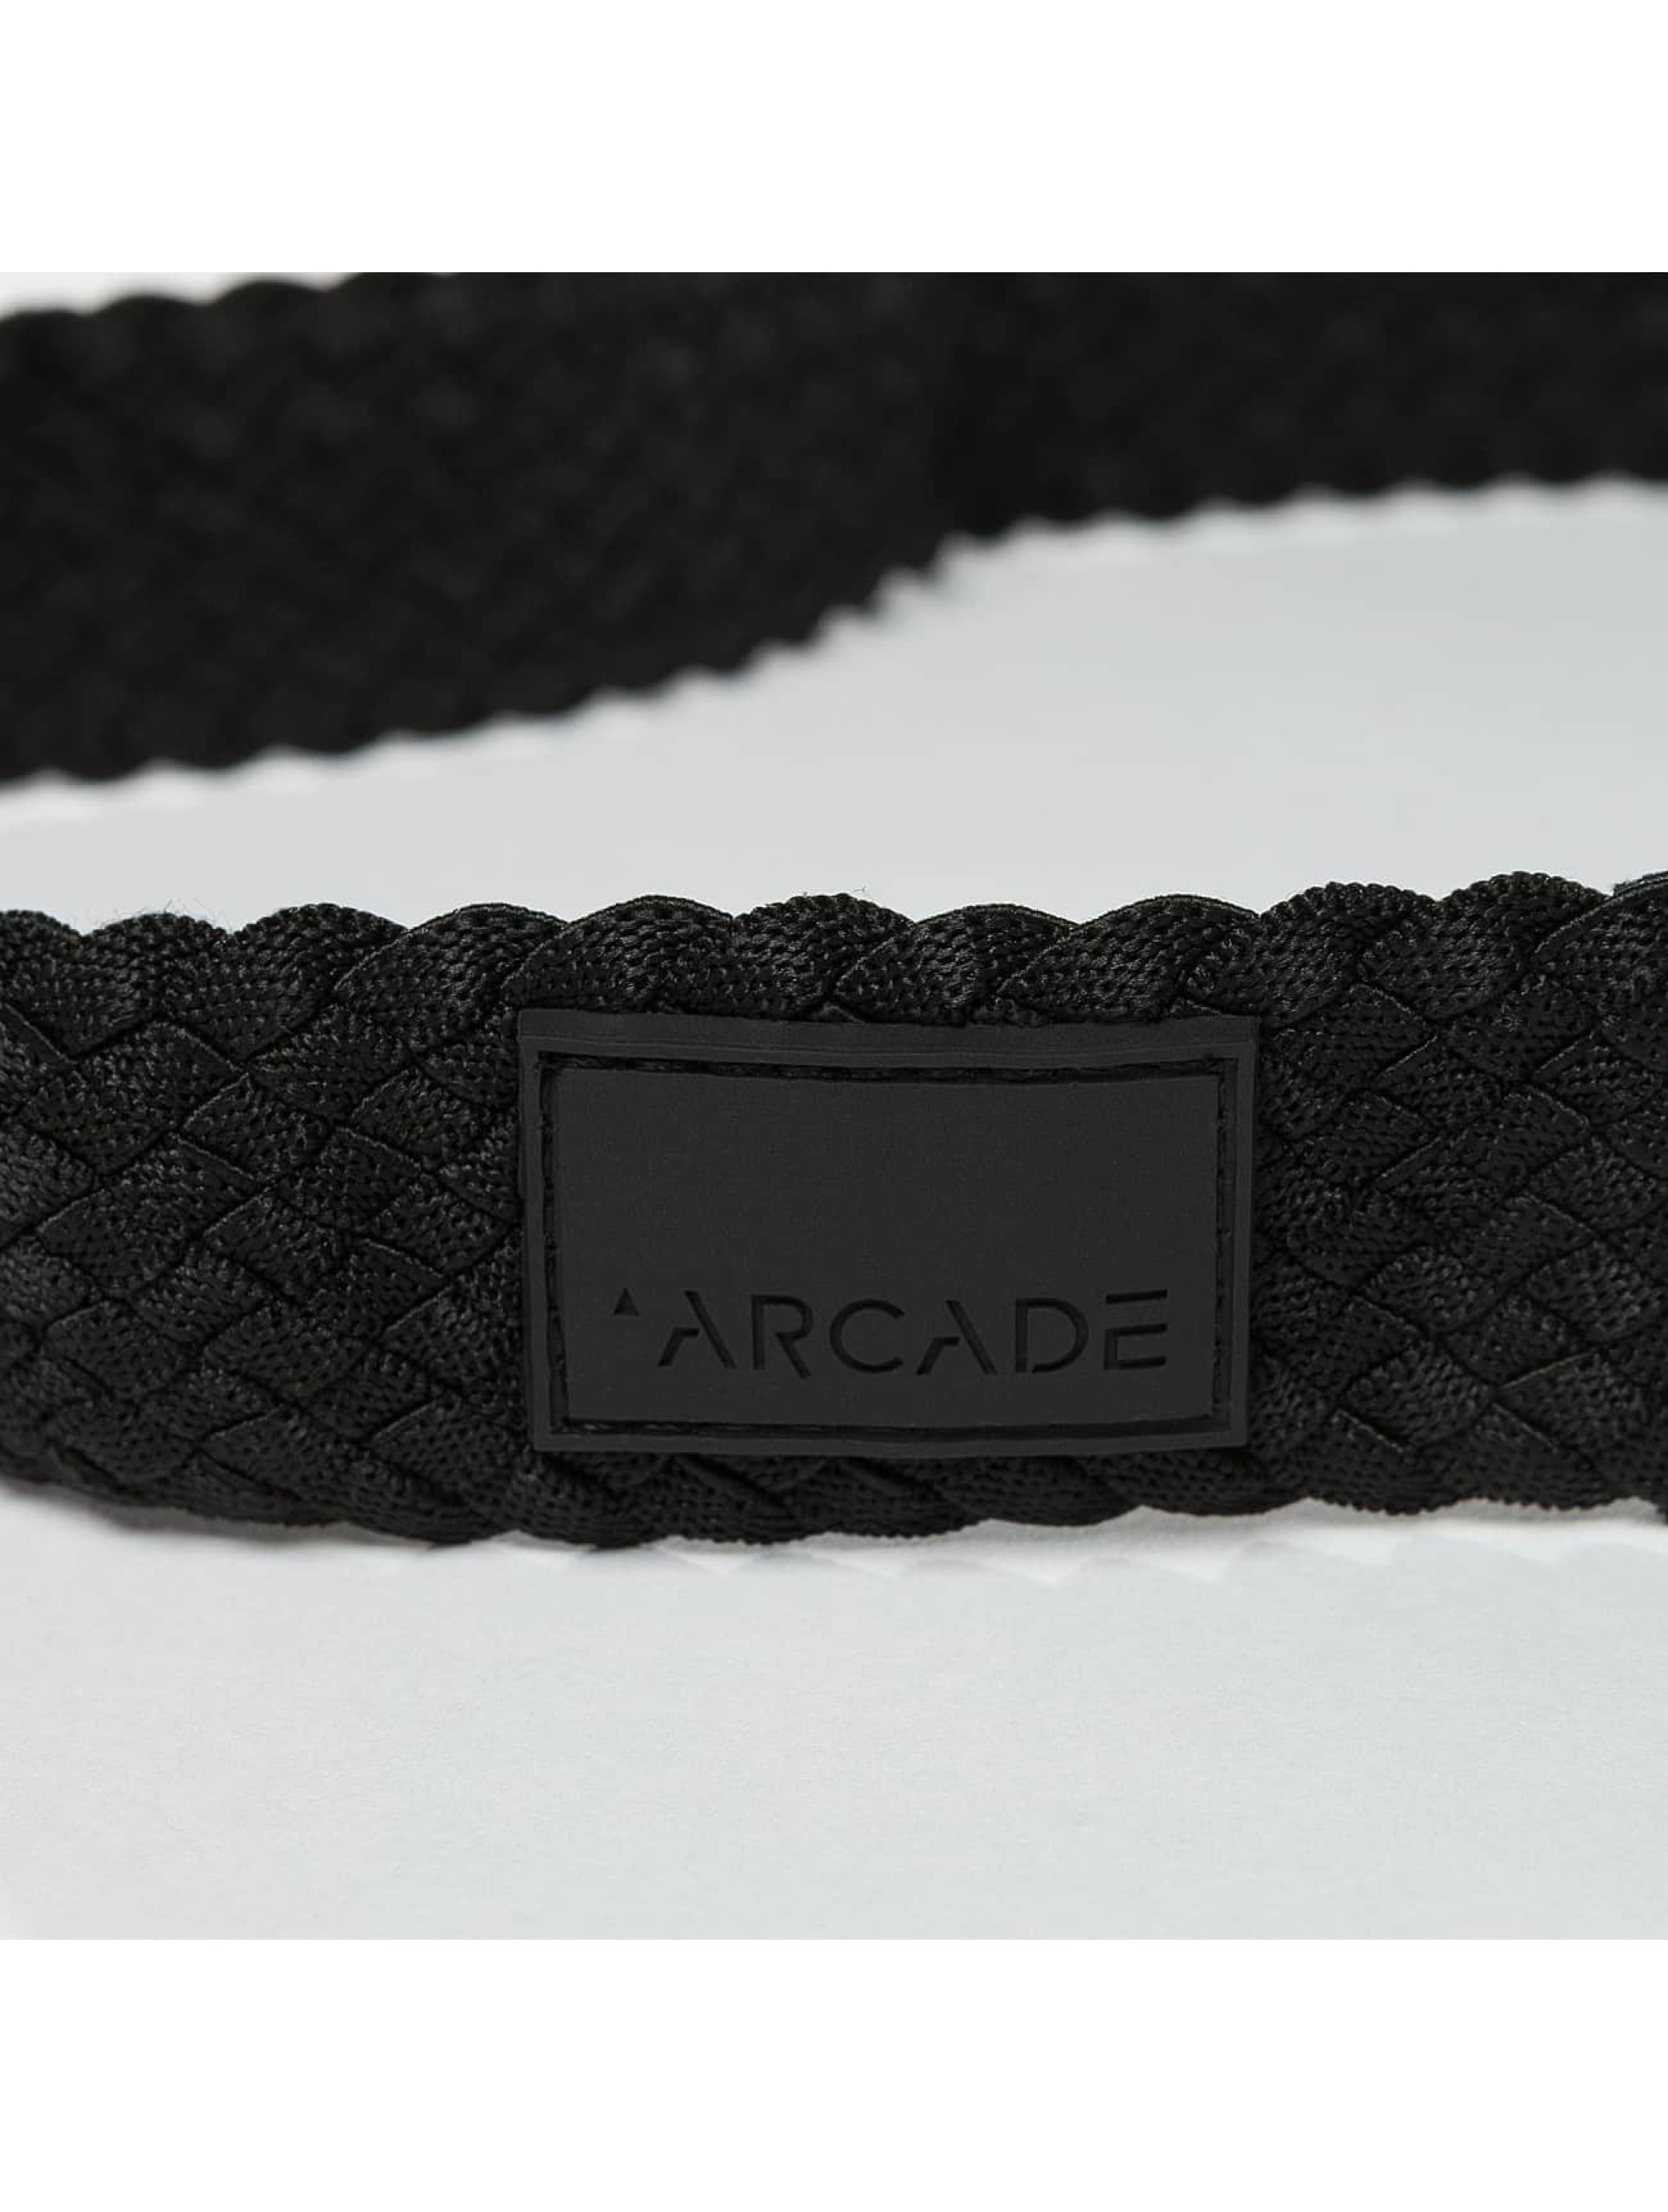 ARCADE Gürtel Futureweave Collection Vapor schwarz